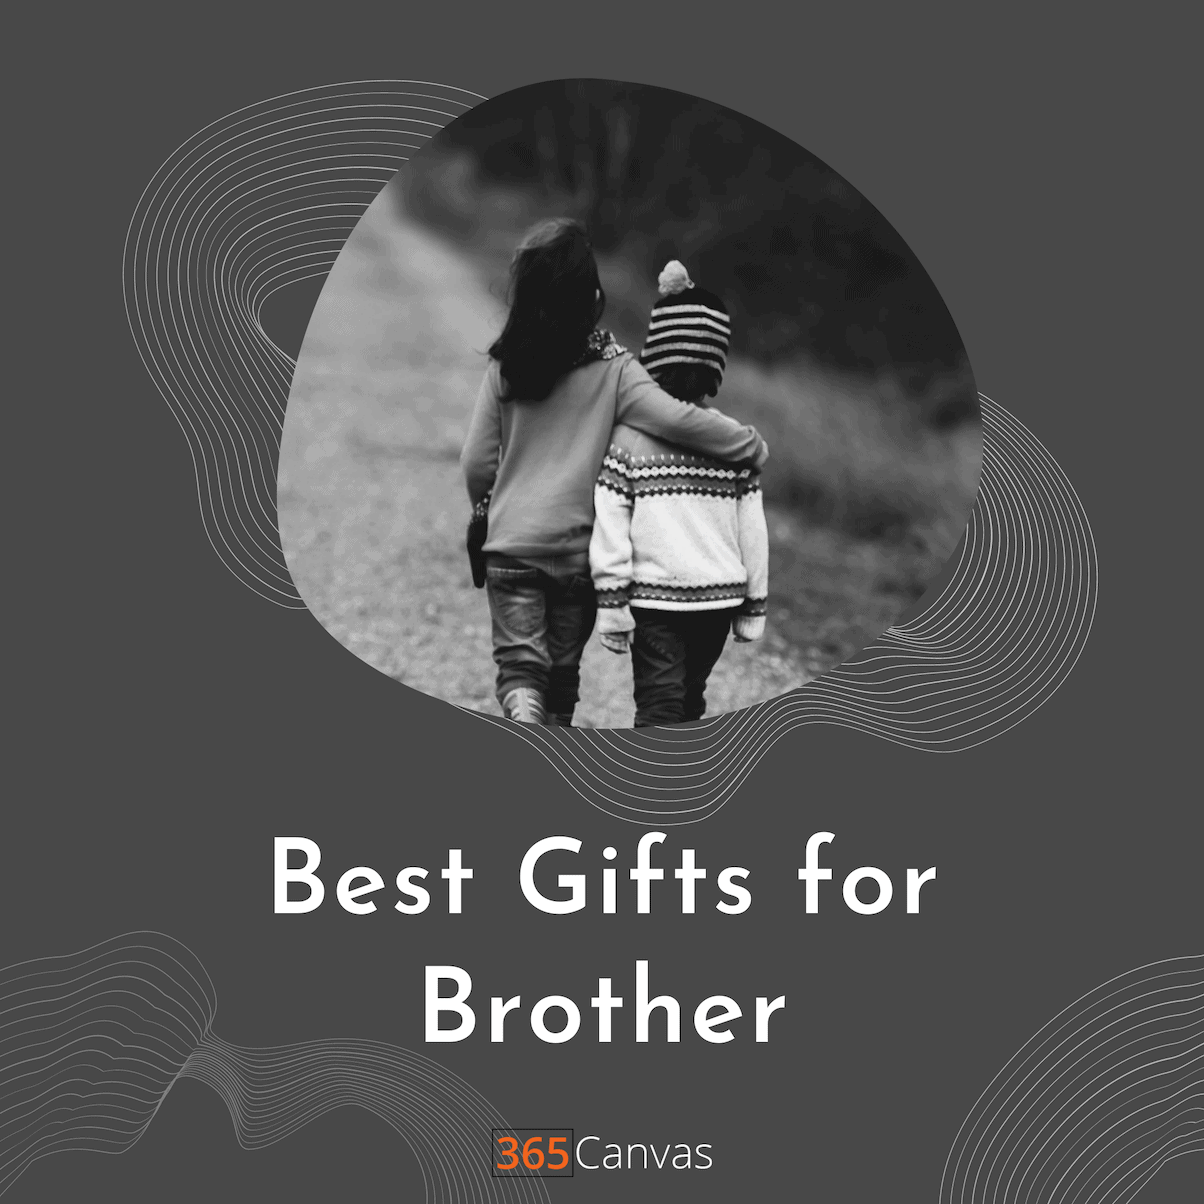 33+ Cool Gift Ideas For Your Brother in 2021